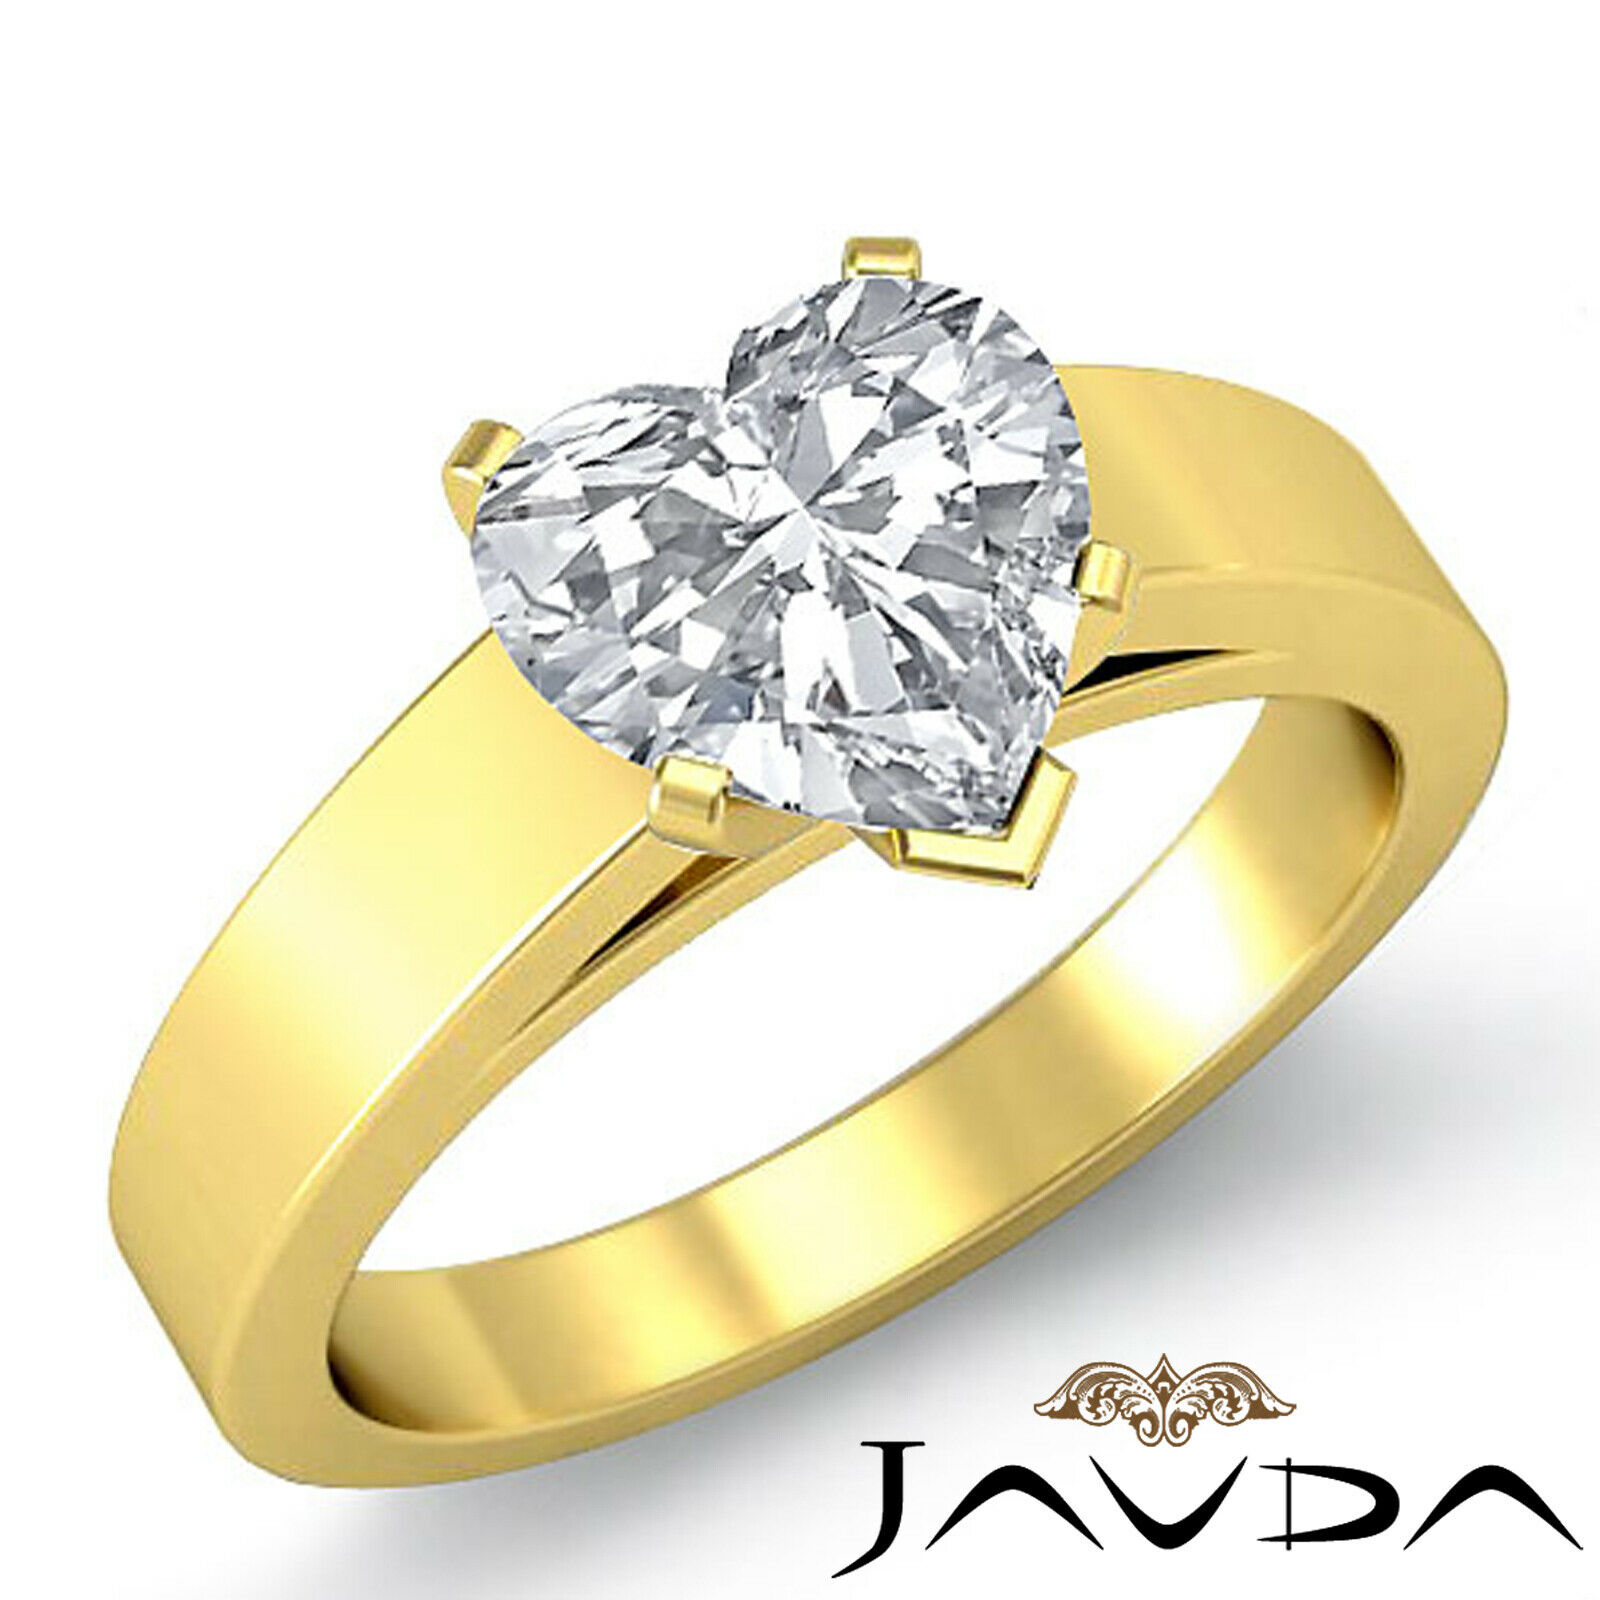 4.5mm Heart Diamond cathedral Solitaire Engagement GIA G SI1 Gold Ring 0.70 ct. 1